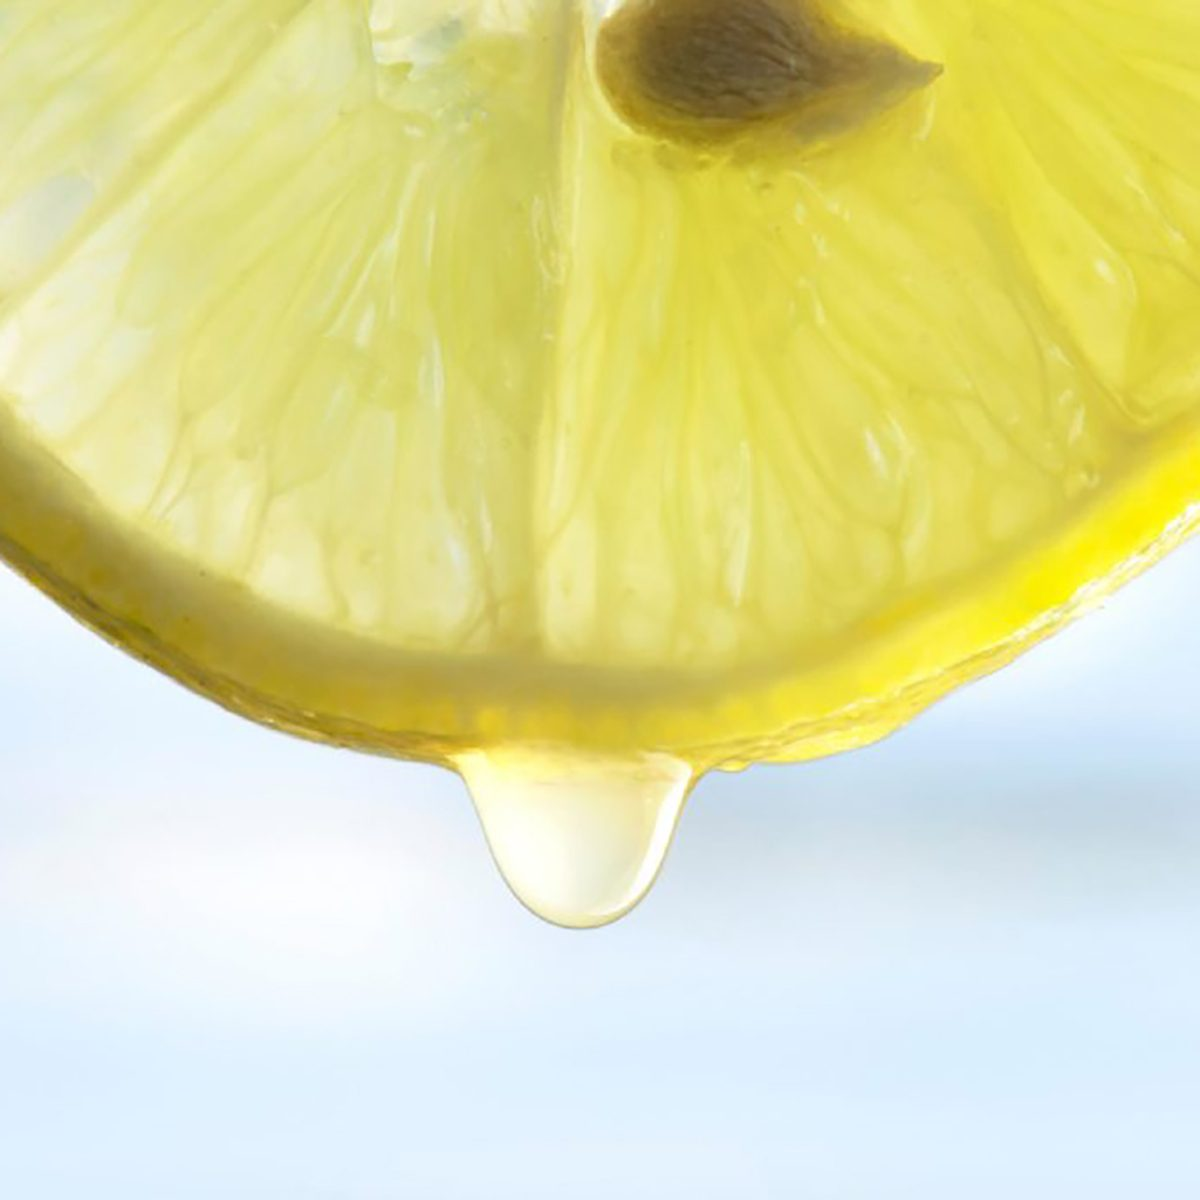 lemon slice dripping juice, best natural cleaning products